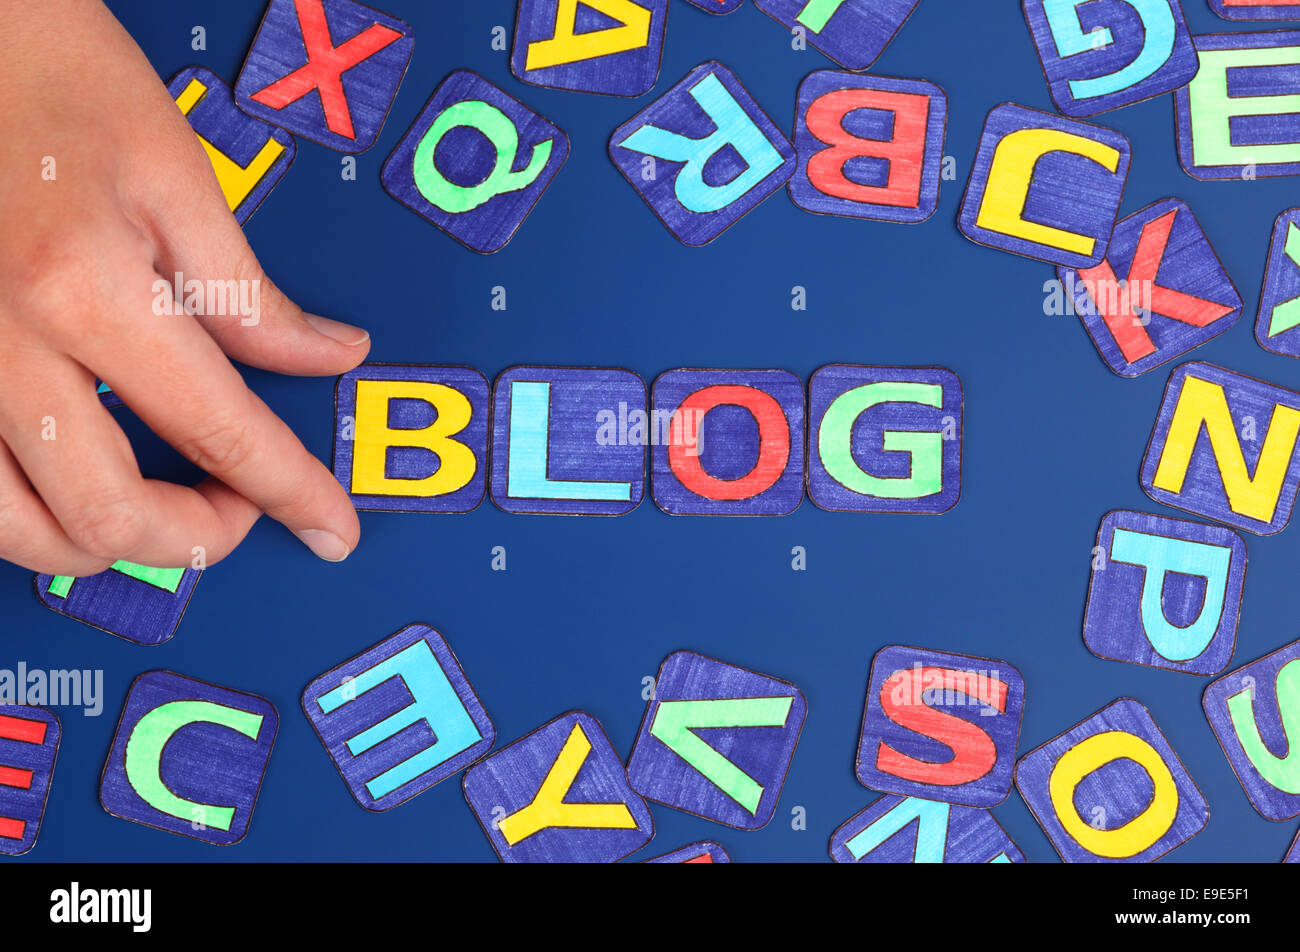 Word 'Blog' spell out on blue background with woman's hand and letters. Letters drawn by me. - Stock Image